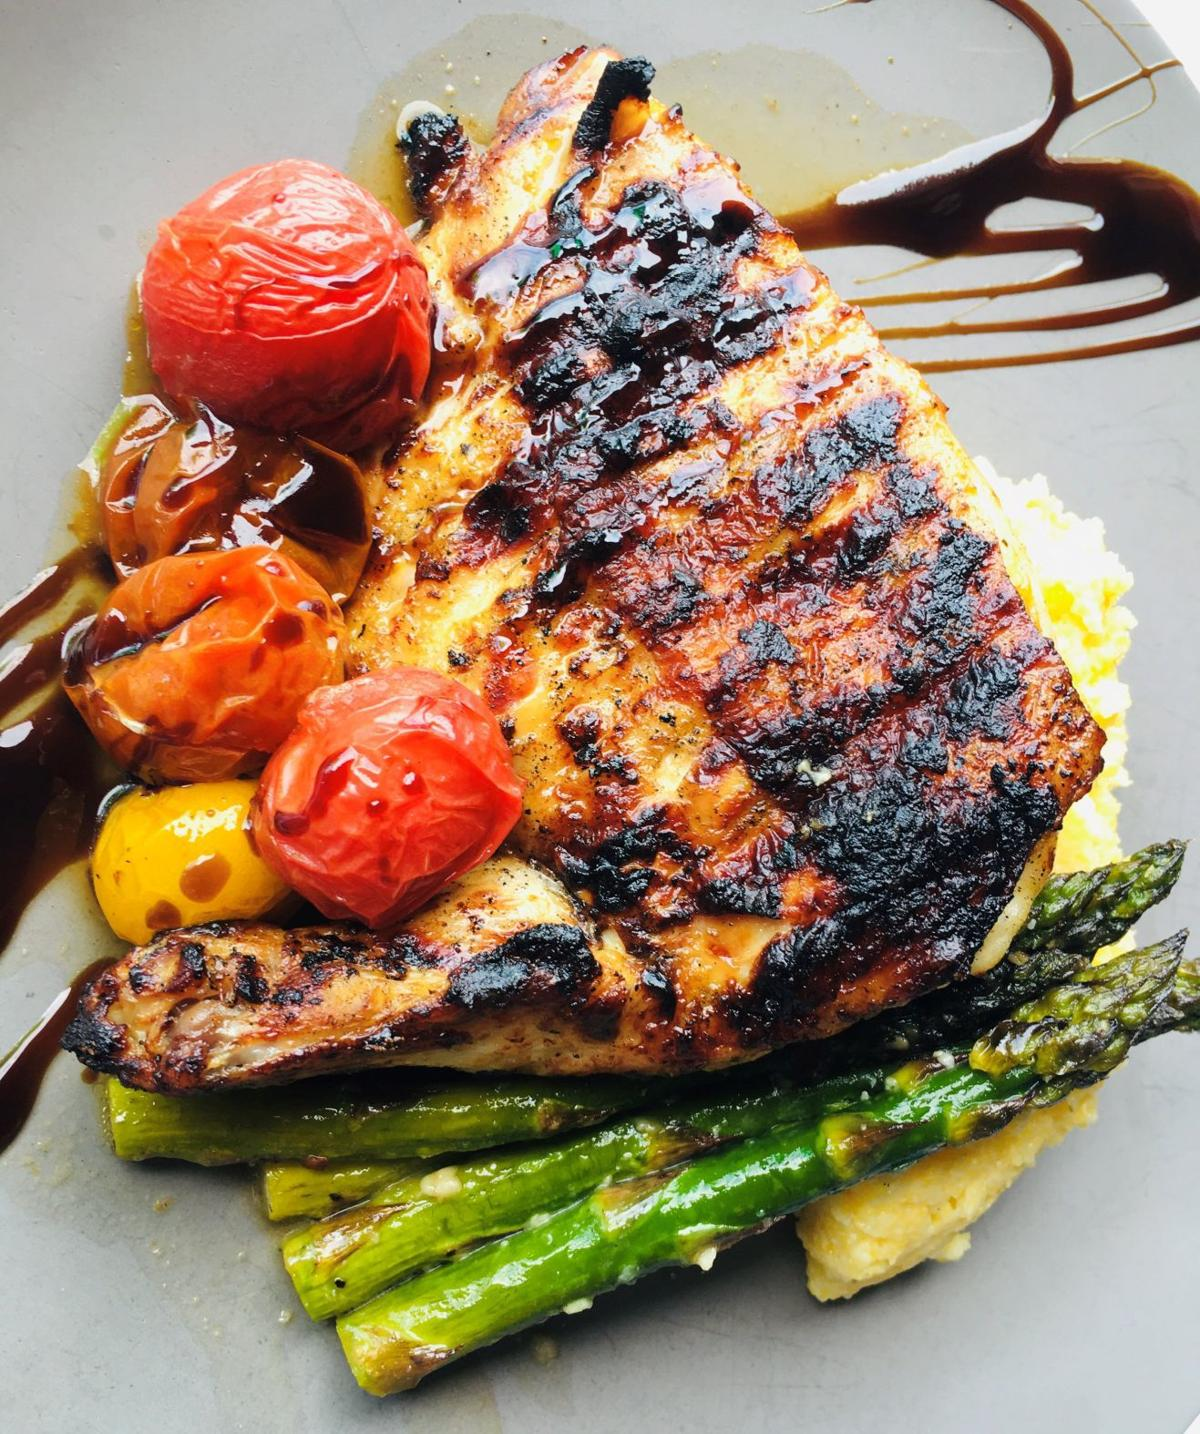 Balsamic Airline Chicken from Ristorante Abruzzi.jpg